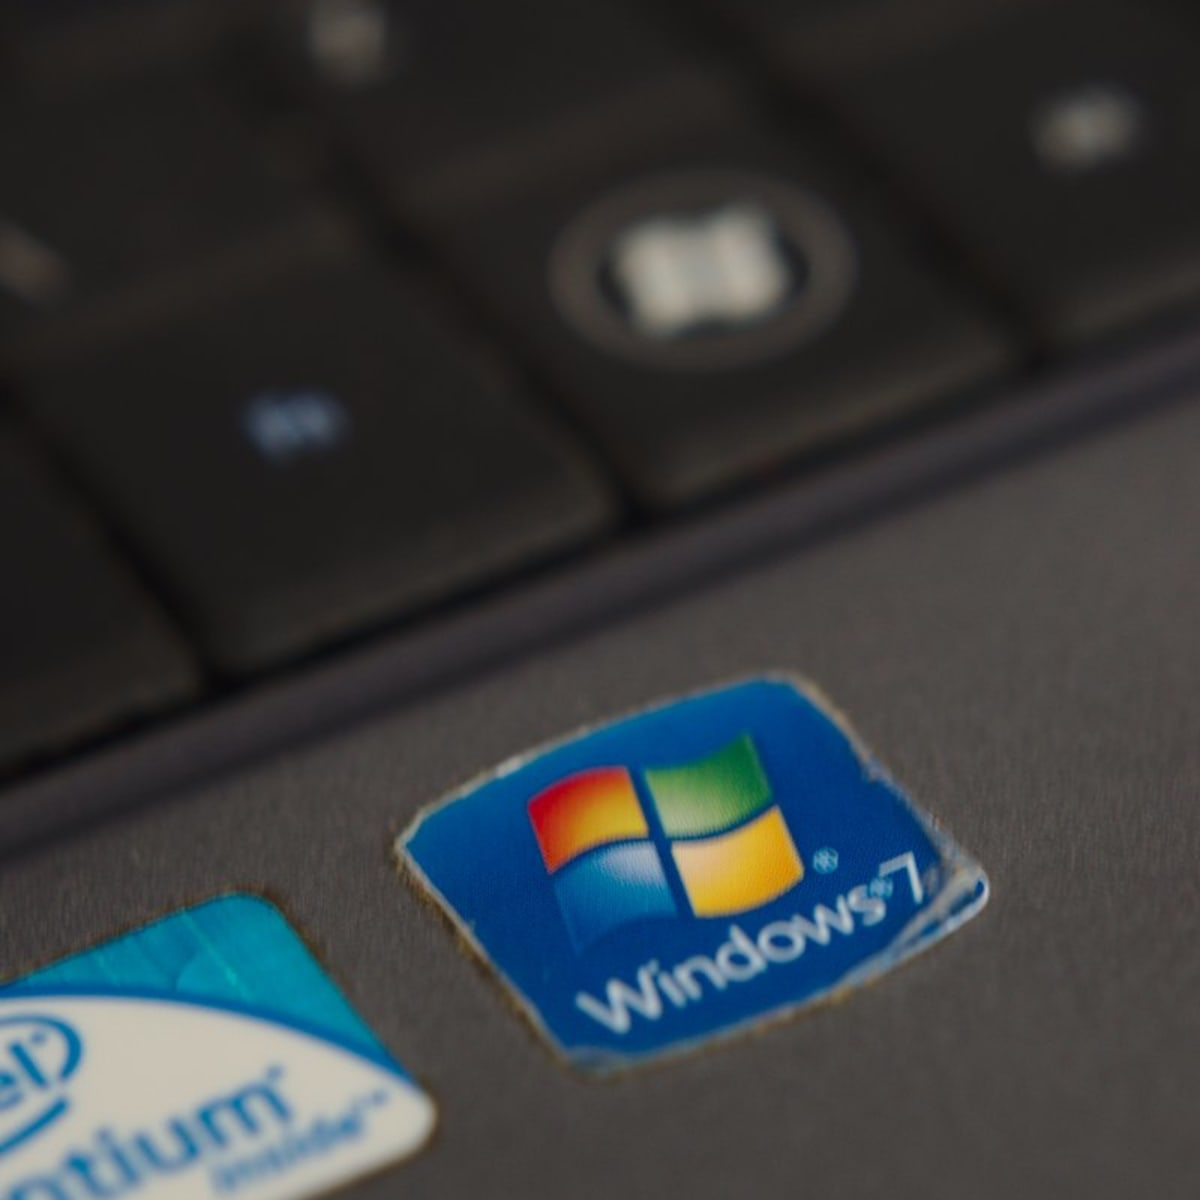 What To Do With Your Old Windows 7 Computer After Microsoft Ends Support And Updates Turbofuture Technology